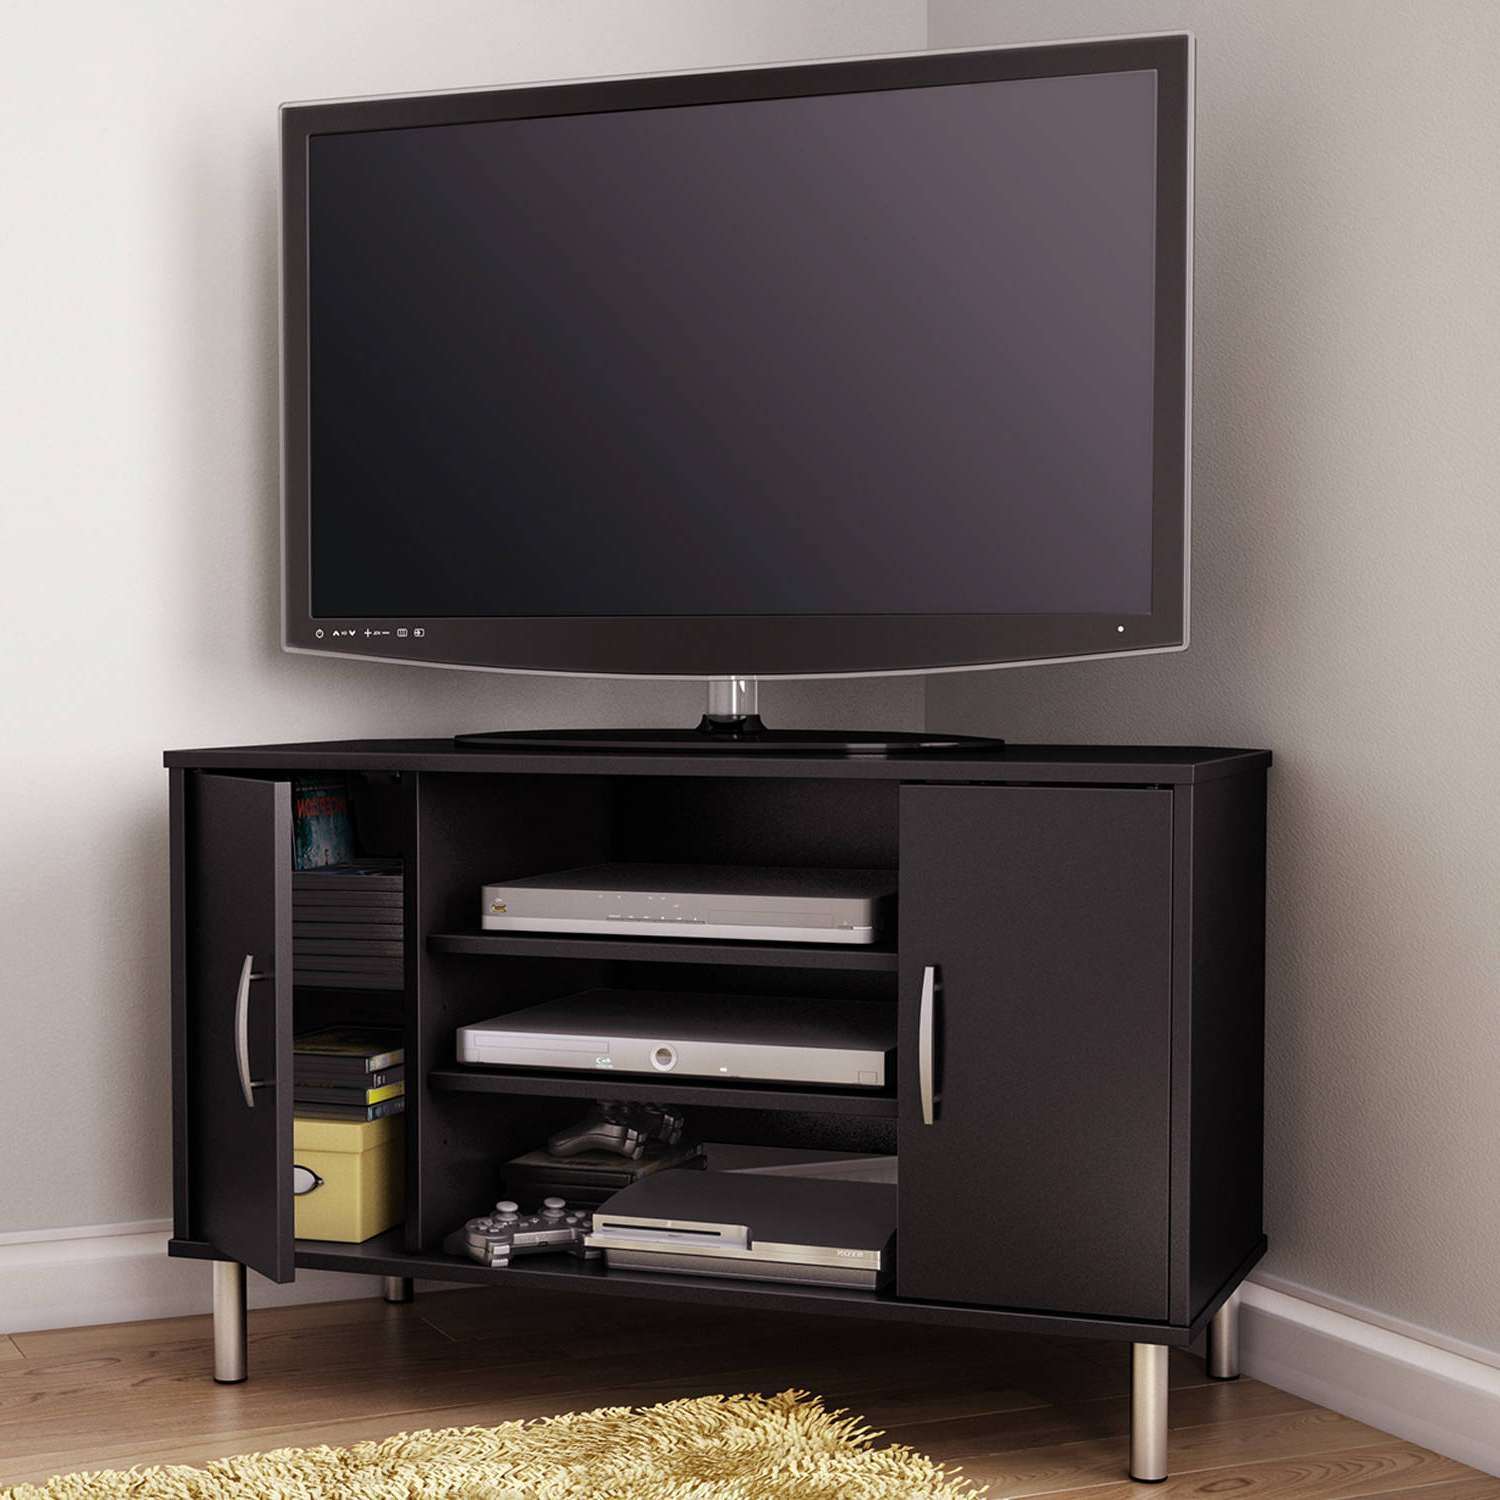 Tv Stand : Corner Tv Stand For Inch Flat Screen Literarywondrous With Regard To 50 Inch Corner Tv Cabinets (View 4 of 20)